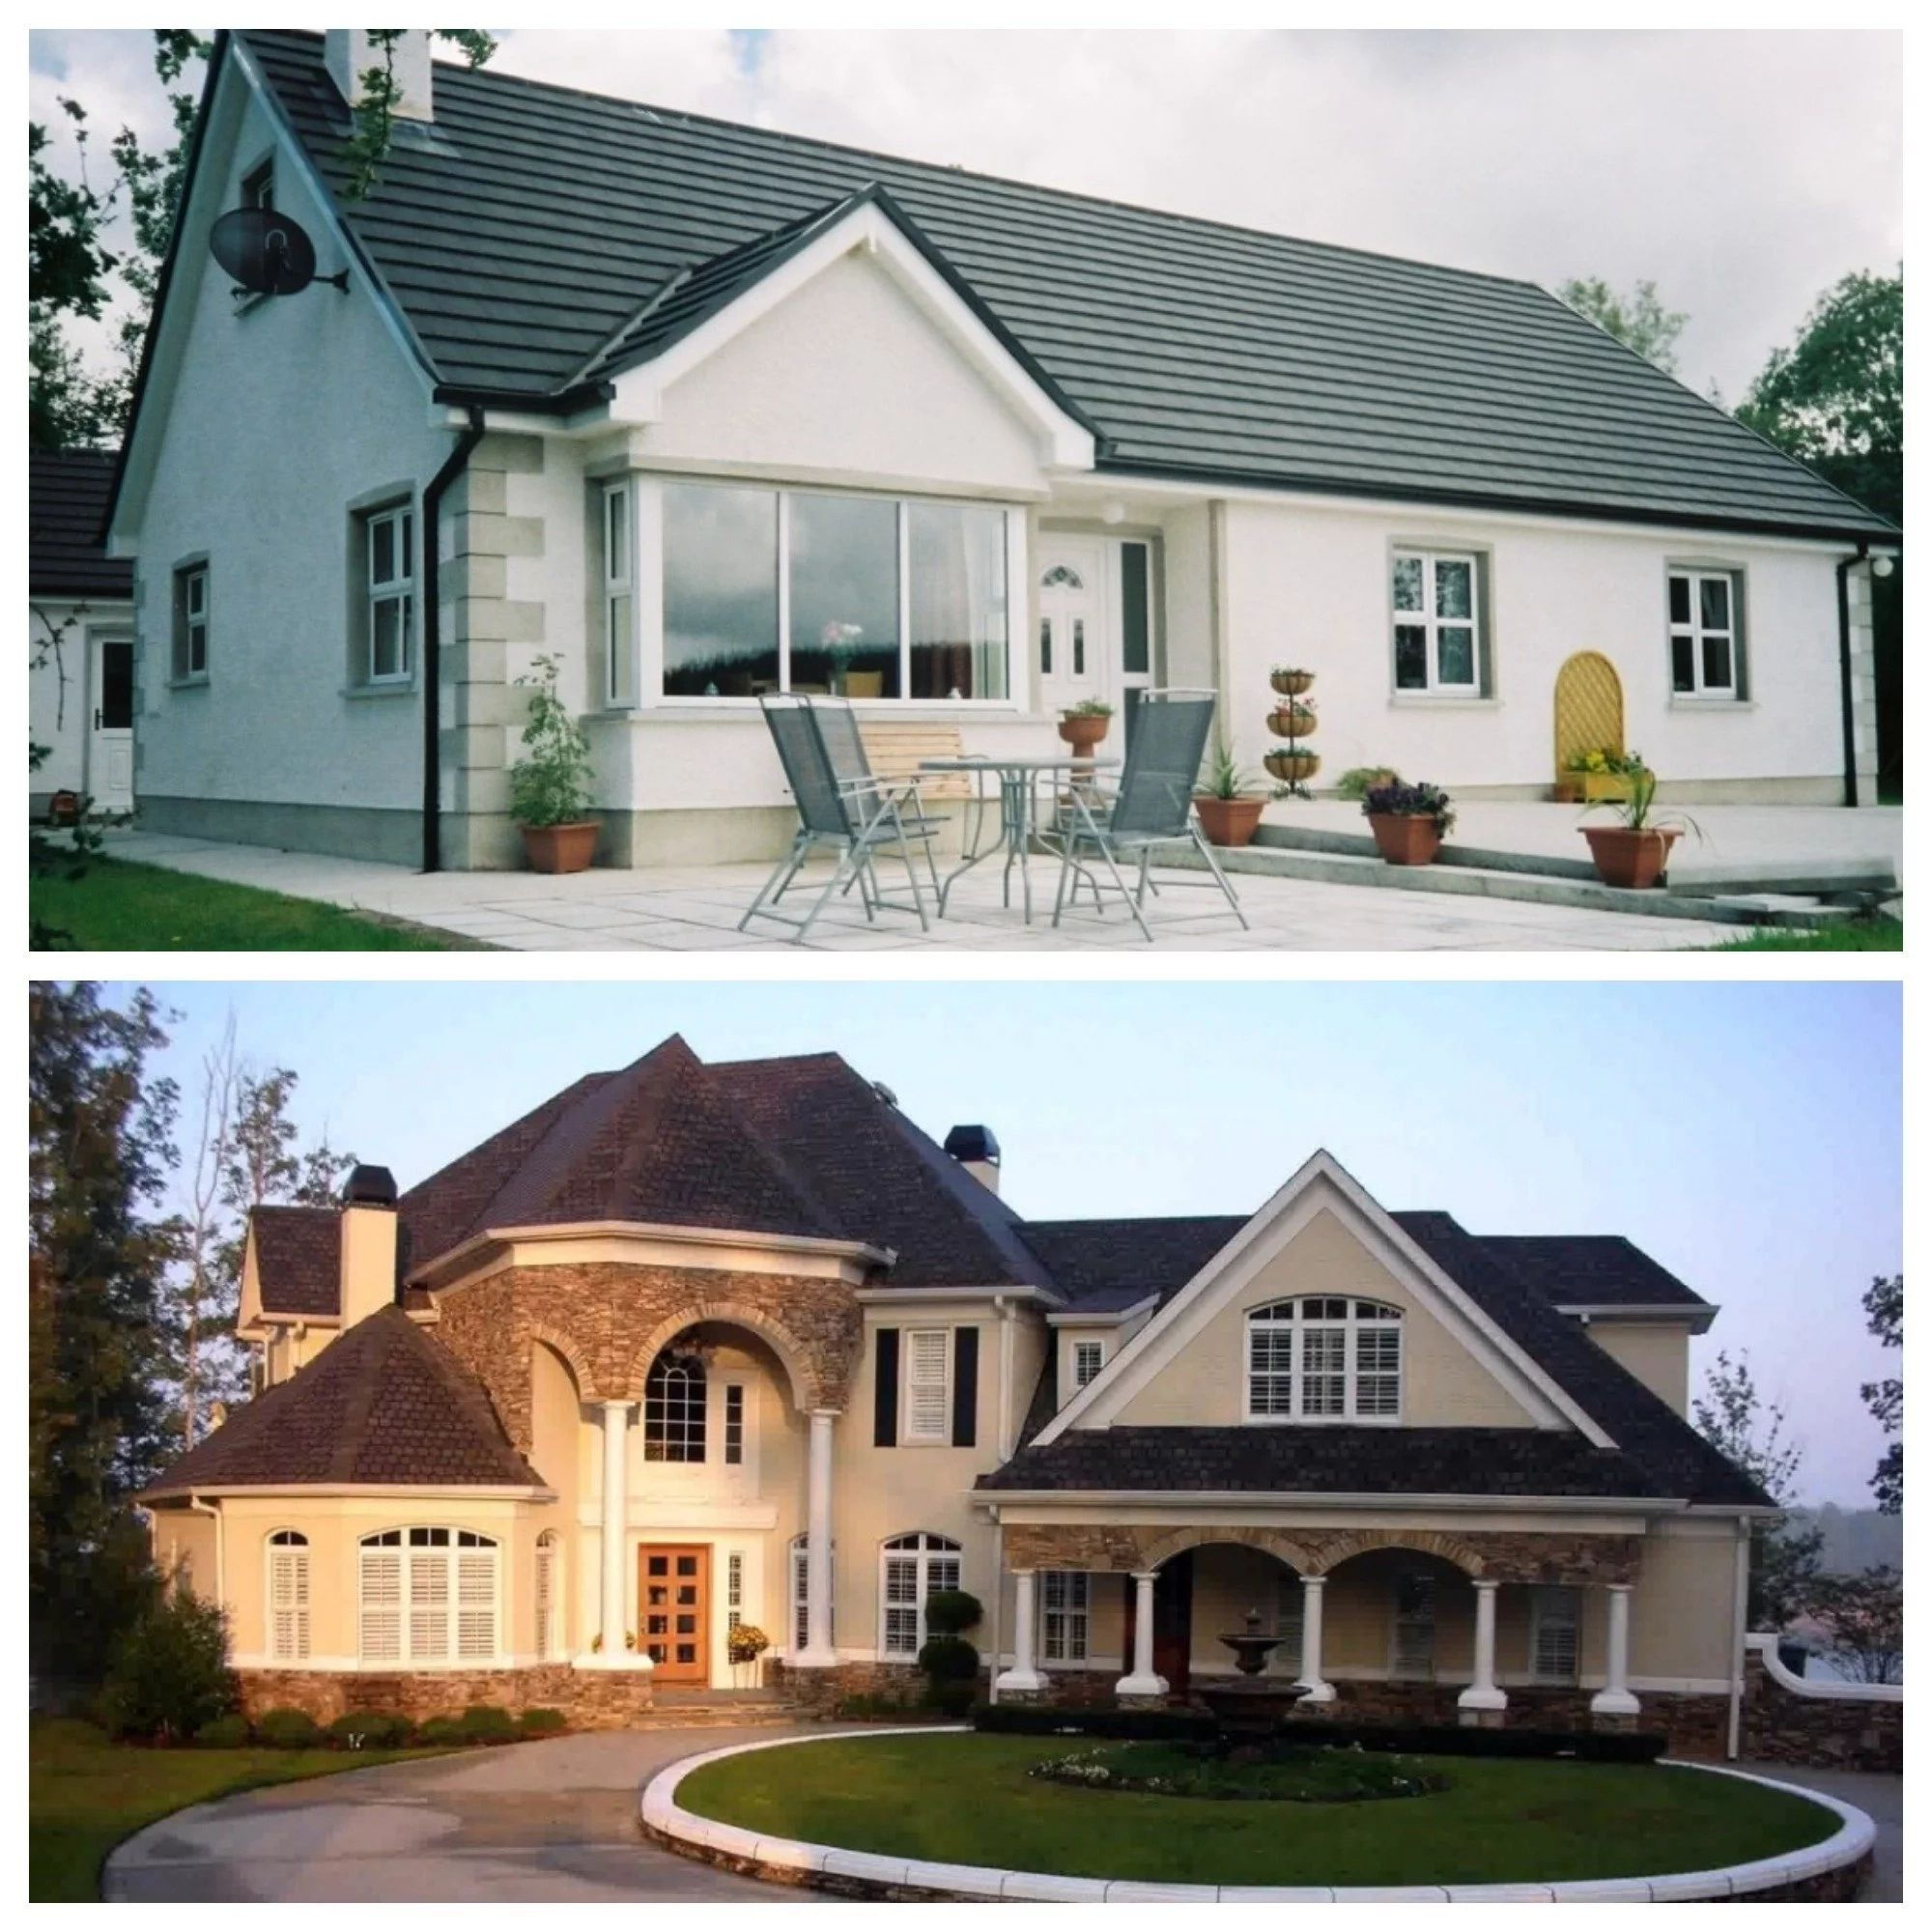 Abuja Landscape Design Ideas Front Of House on frontrunners landscape designs house, front walkways to house, landscape idea for the front of your house, landscaping near house,